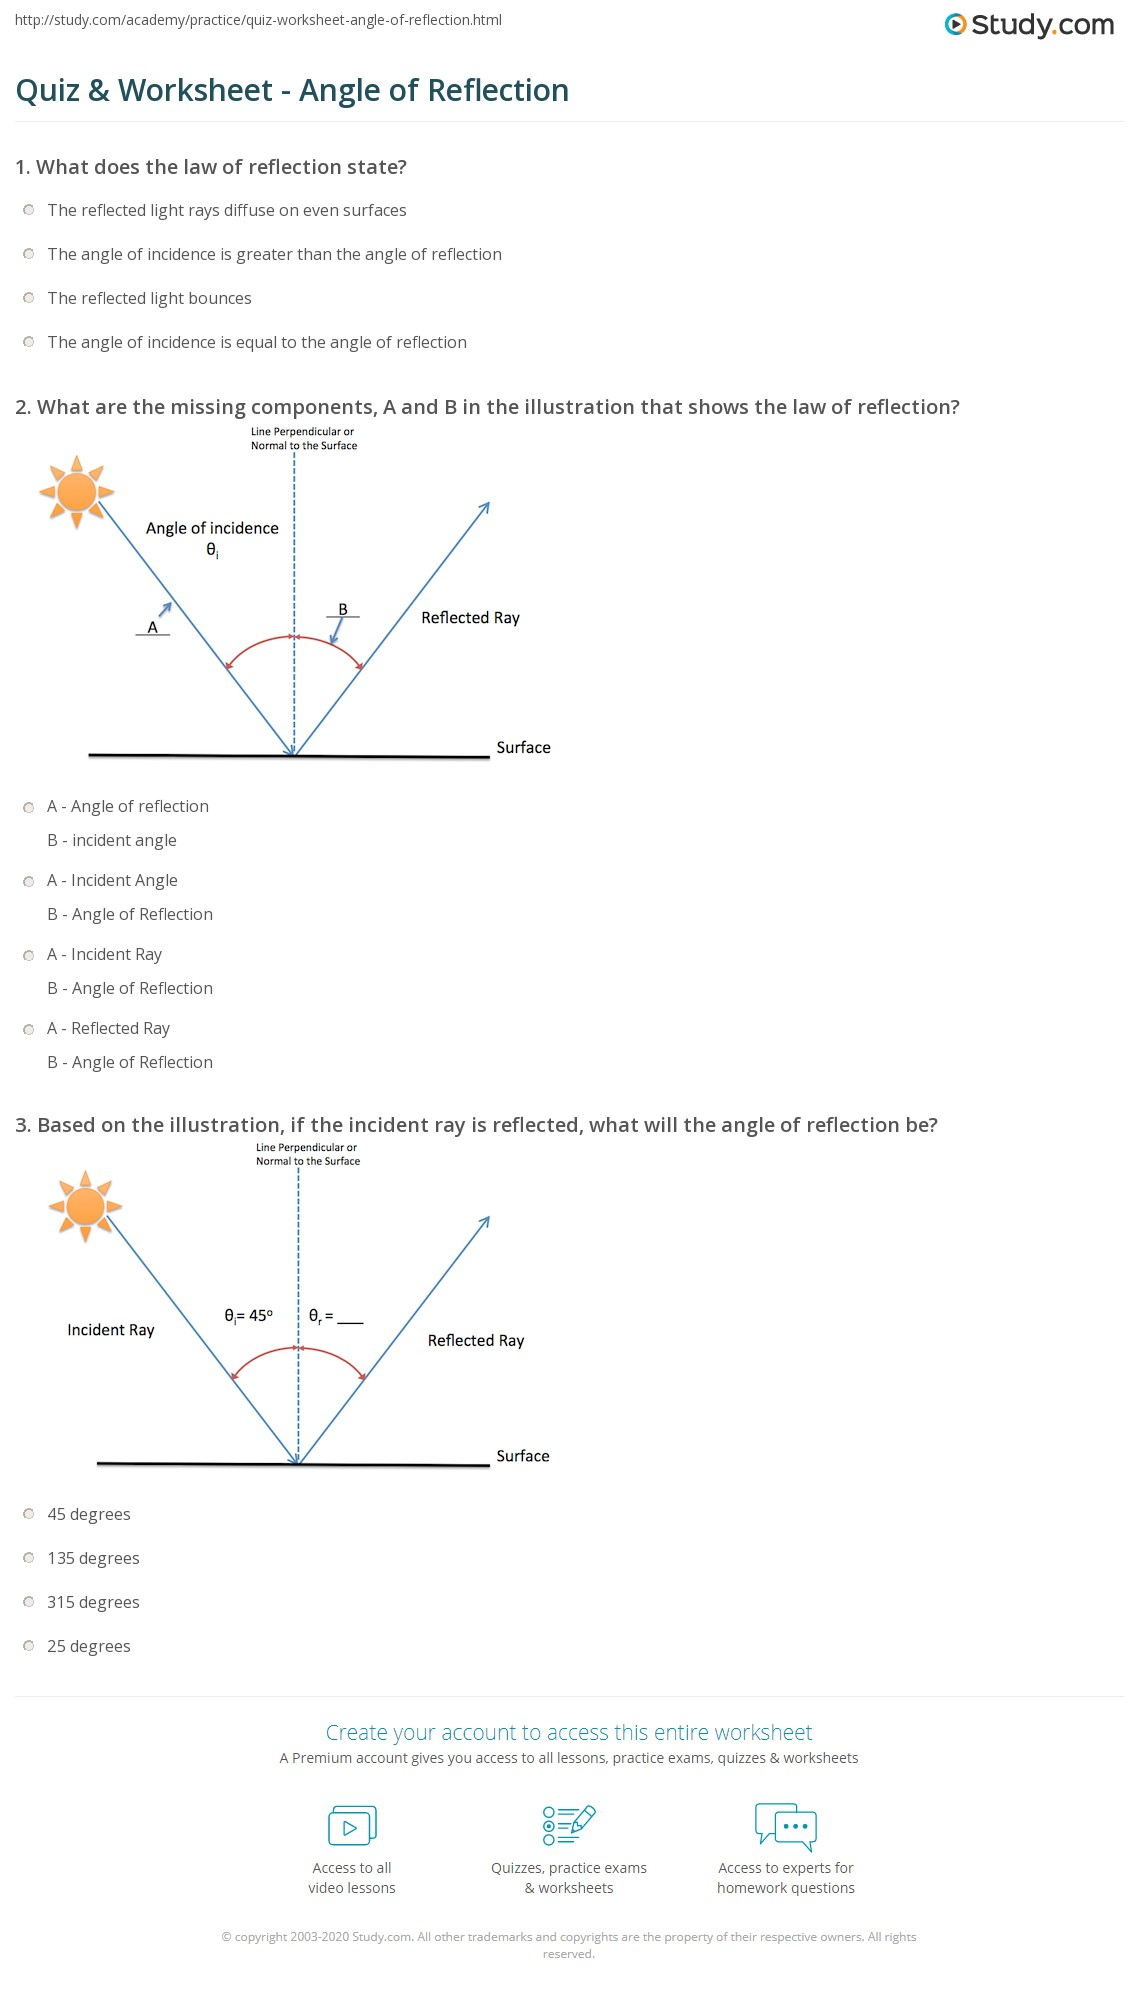 print angle of reflection definition formula worksheet - Reflection Worksheet